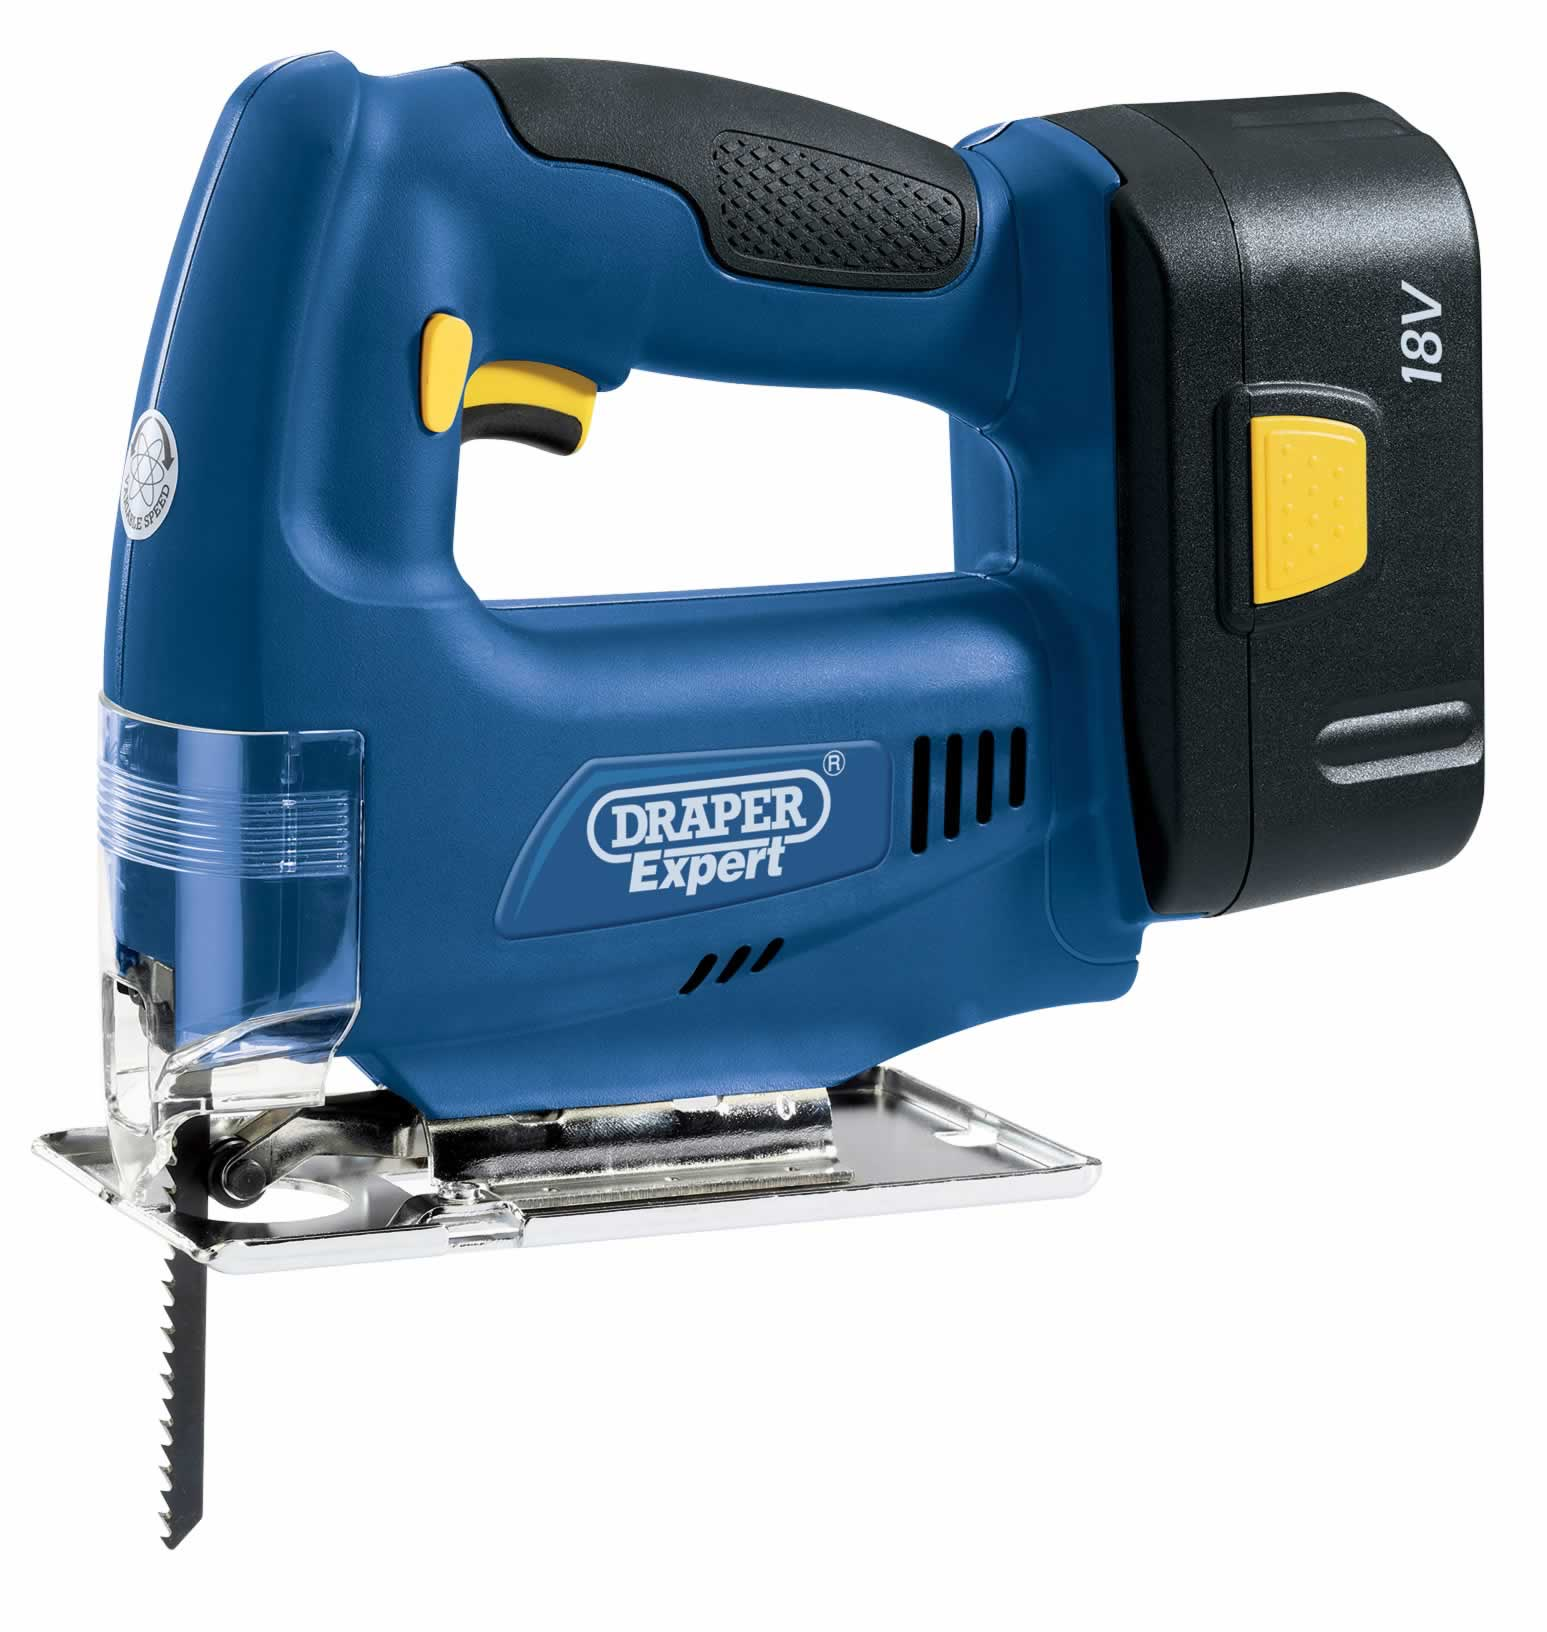 EXPERT 18V VARIABLE SPEED JIGSAW WITH BATTERY